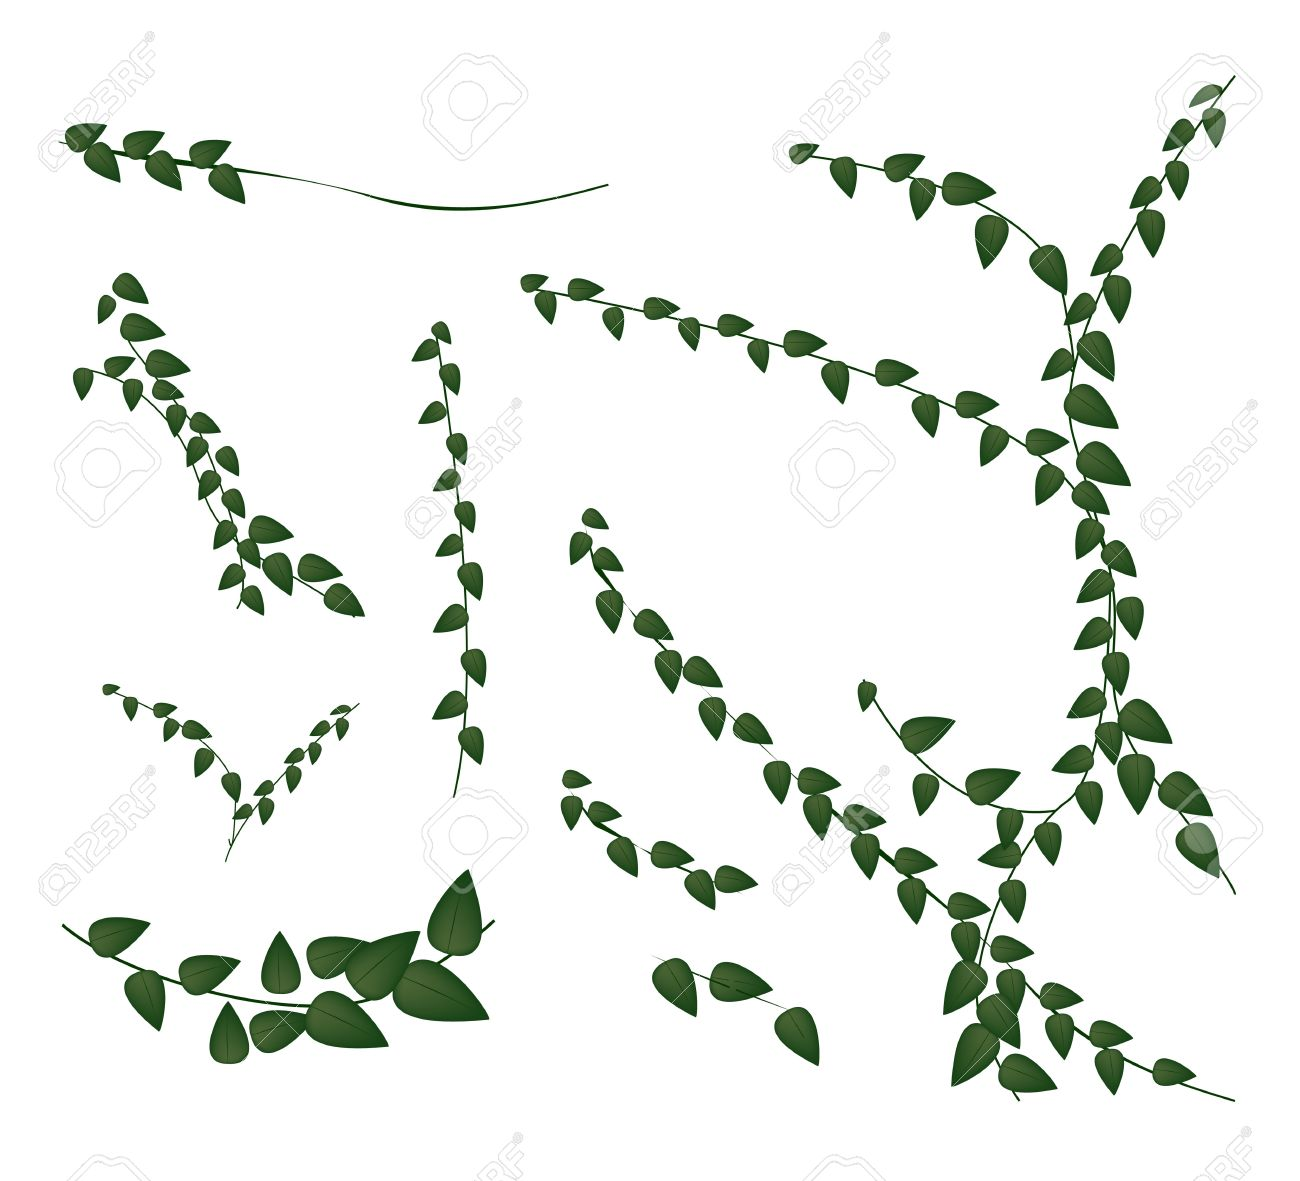 Ecological Concept, An Illustration Collection of Various Style of Ficus Pumila or Green Leaf Creeper Wall Plant Isolated on White Background - 19028395